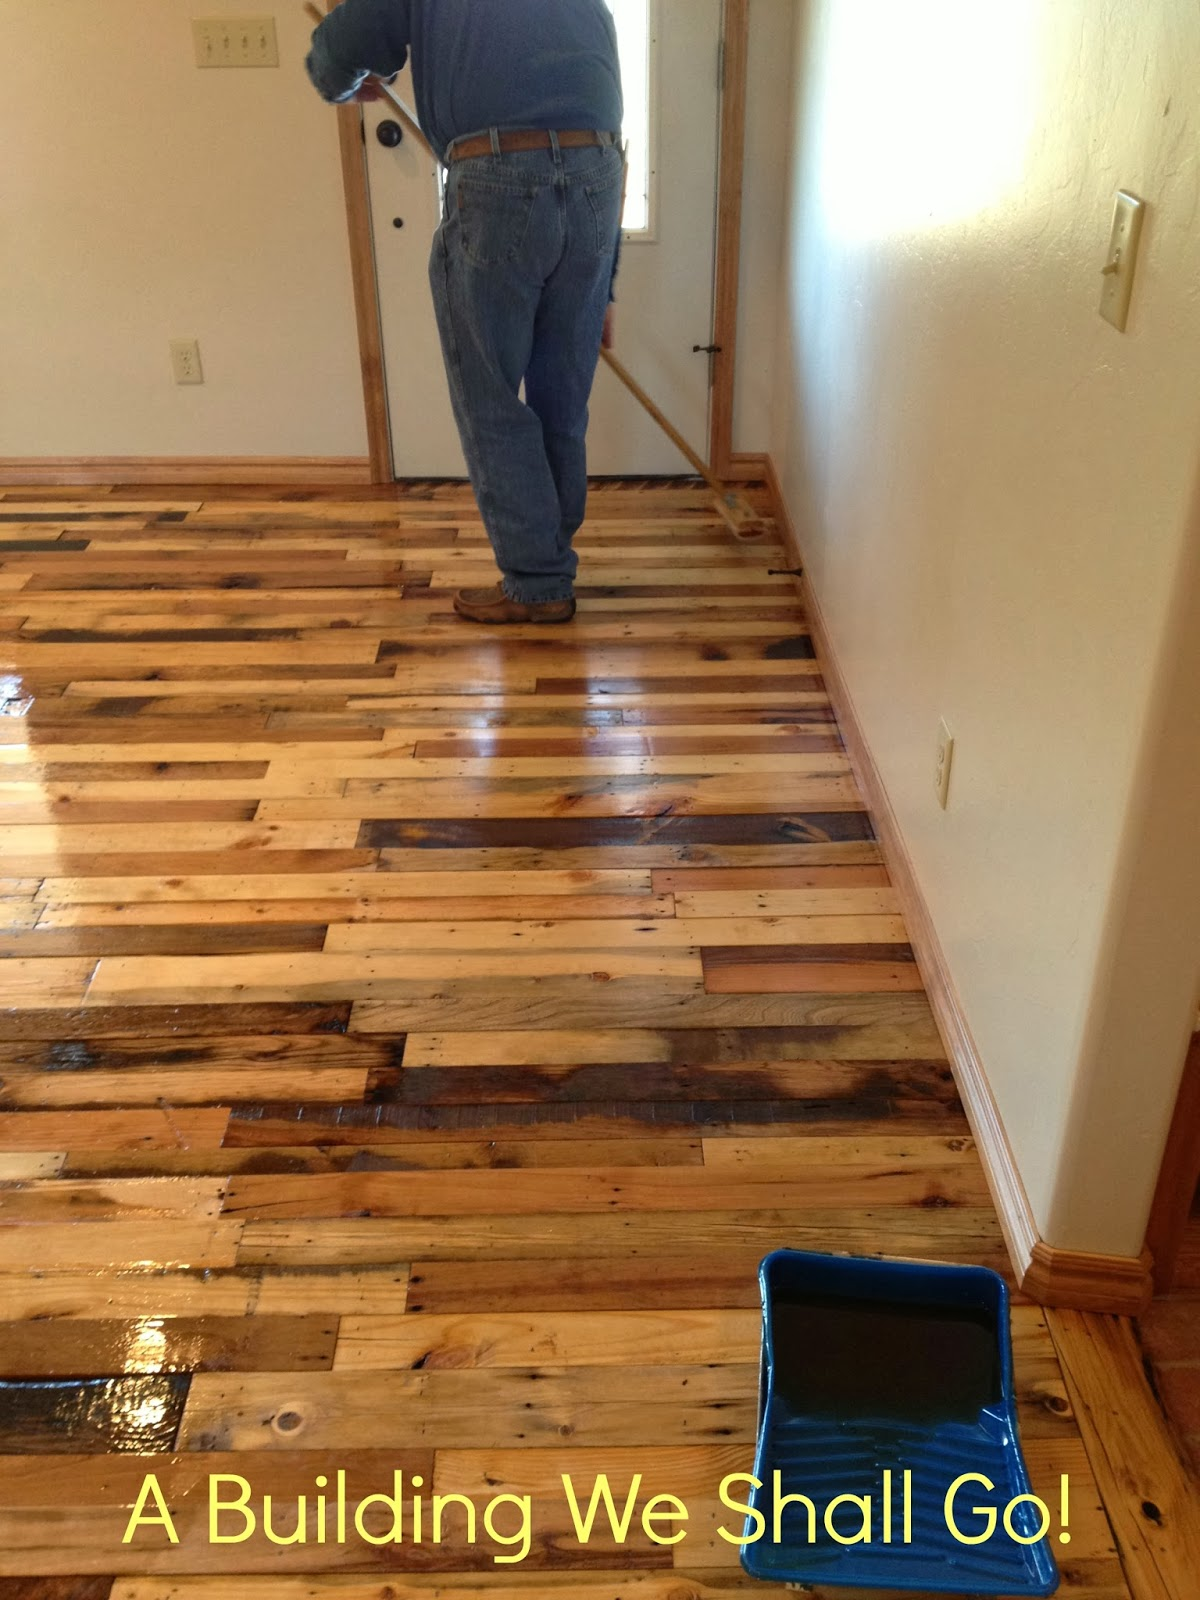 Hardwood Floor Wax hardwood floor wax removal A Building We Shall Go